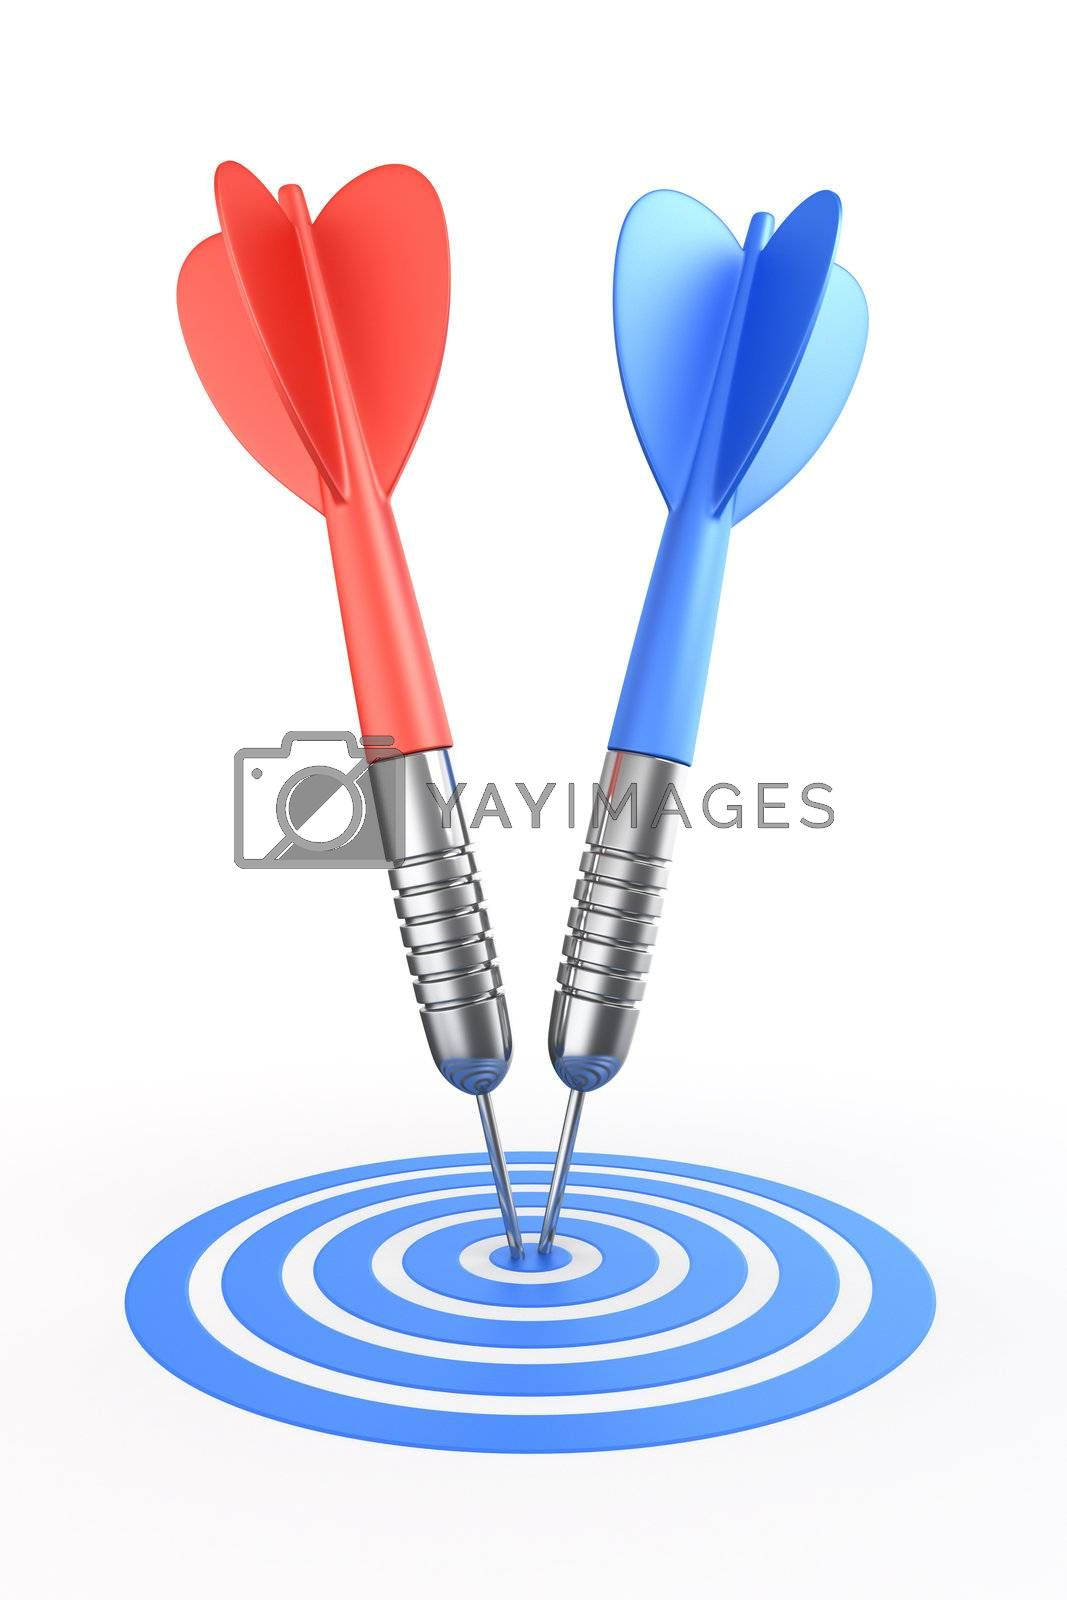 3d rendering of darts hitting the target